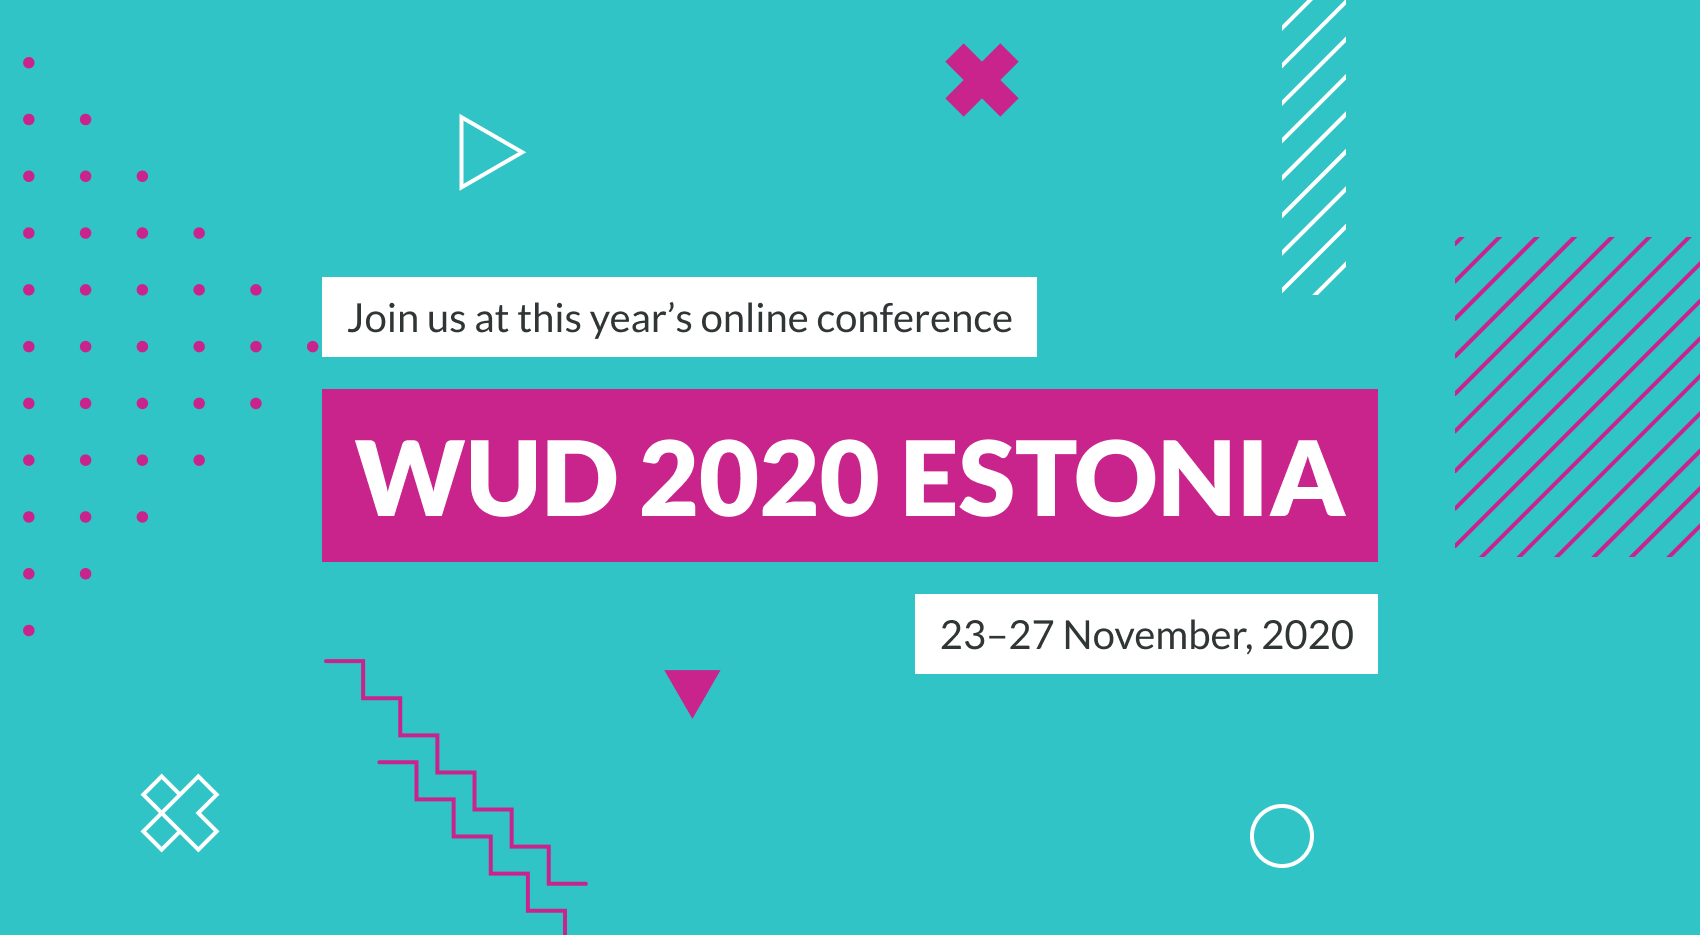 World Usability Day 2020 Estonia in 23rd till 27th November